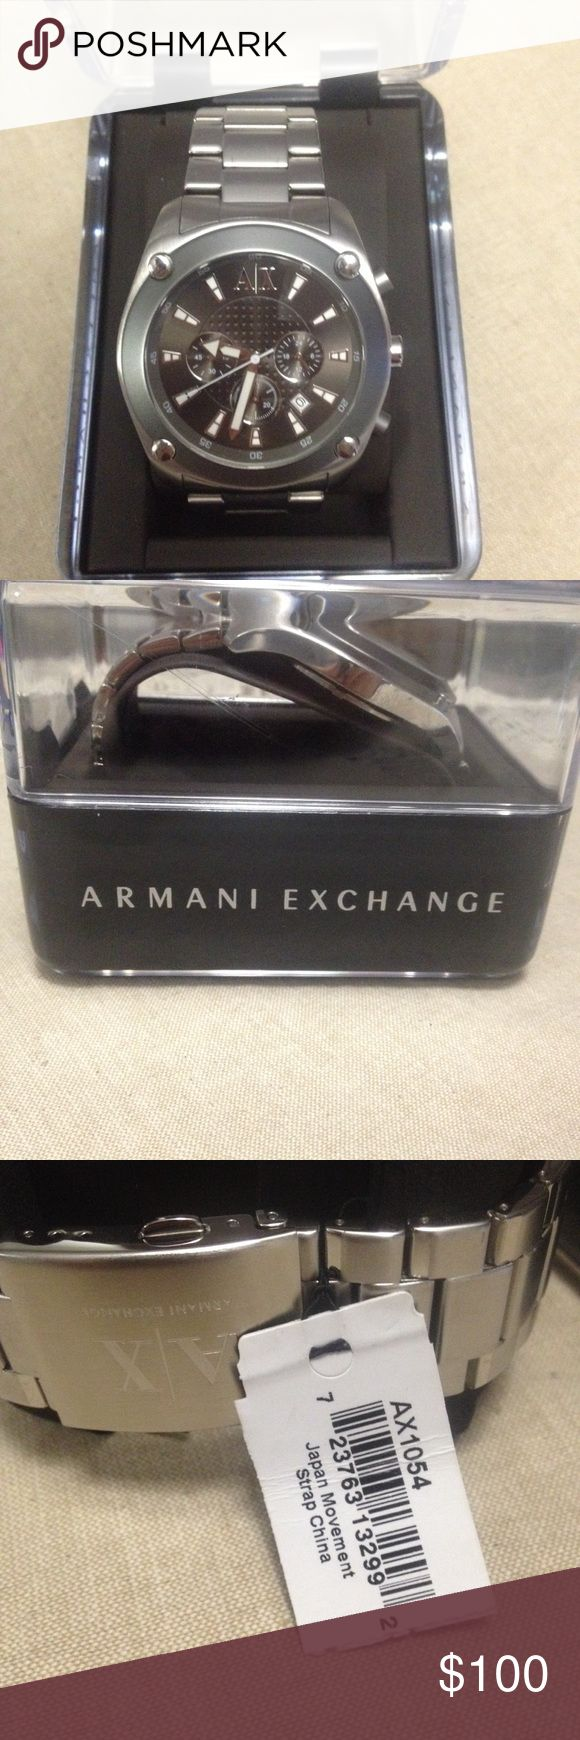 Armani exchange men's watch Armani exchange stainless steal men's watch brand new with box never worn A/X Armani Exchange Accessories Watches